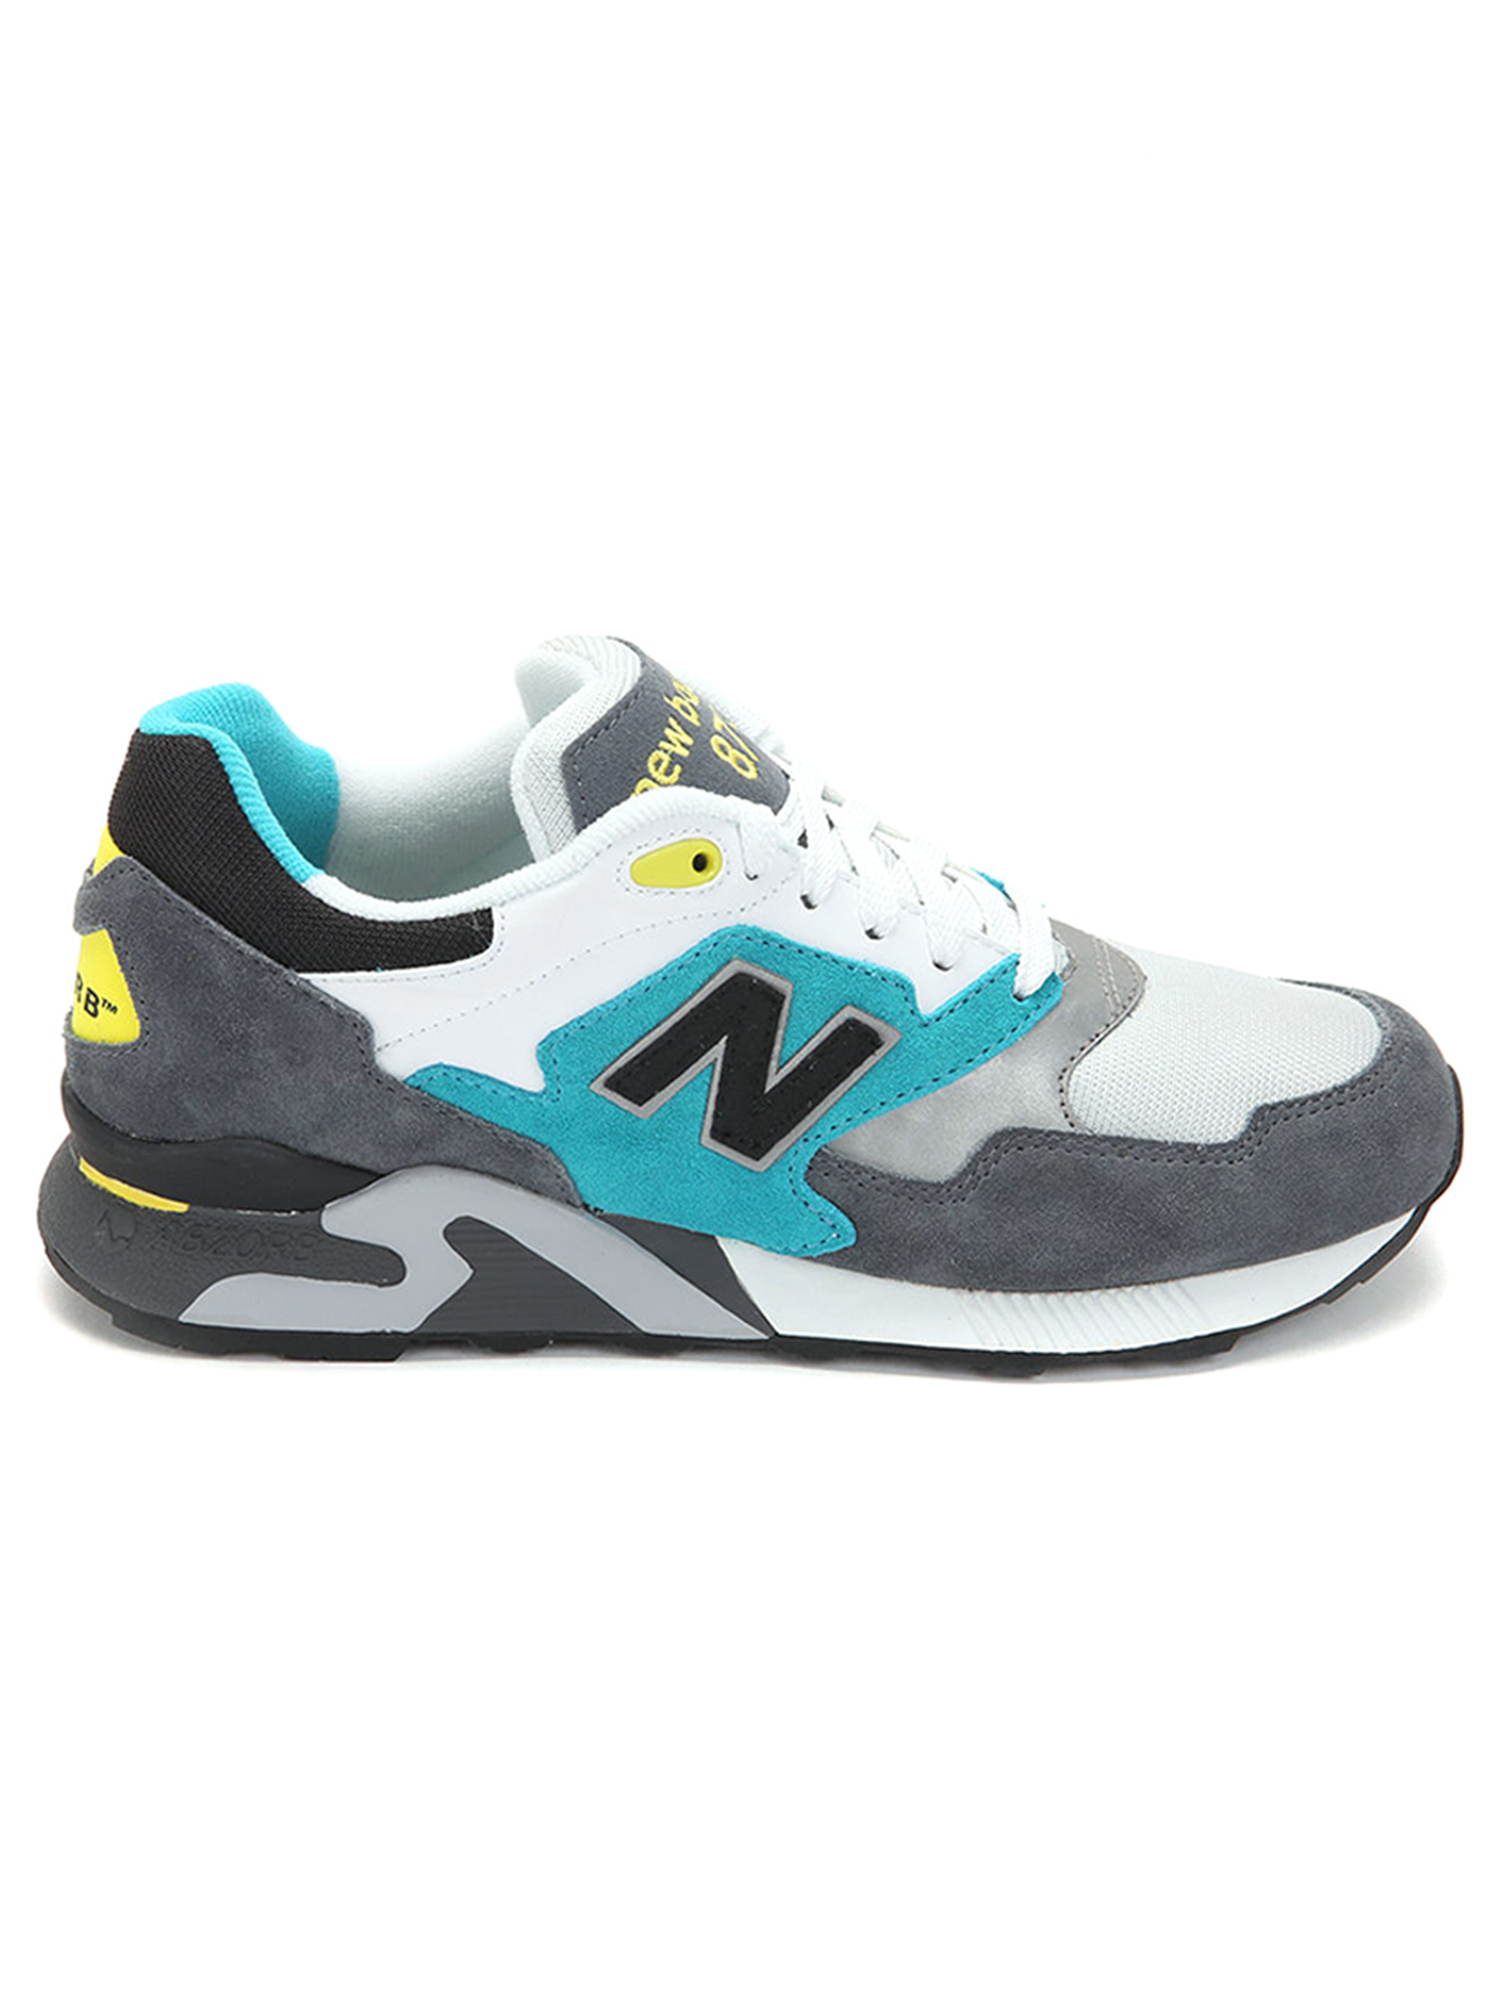 New Balance Men's 878 90's Running Shoes ML878AAC Grey/White/Teal